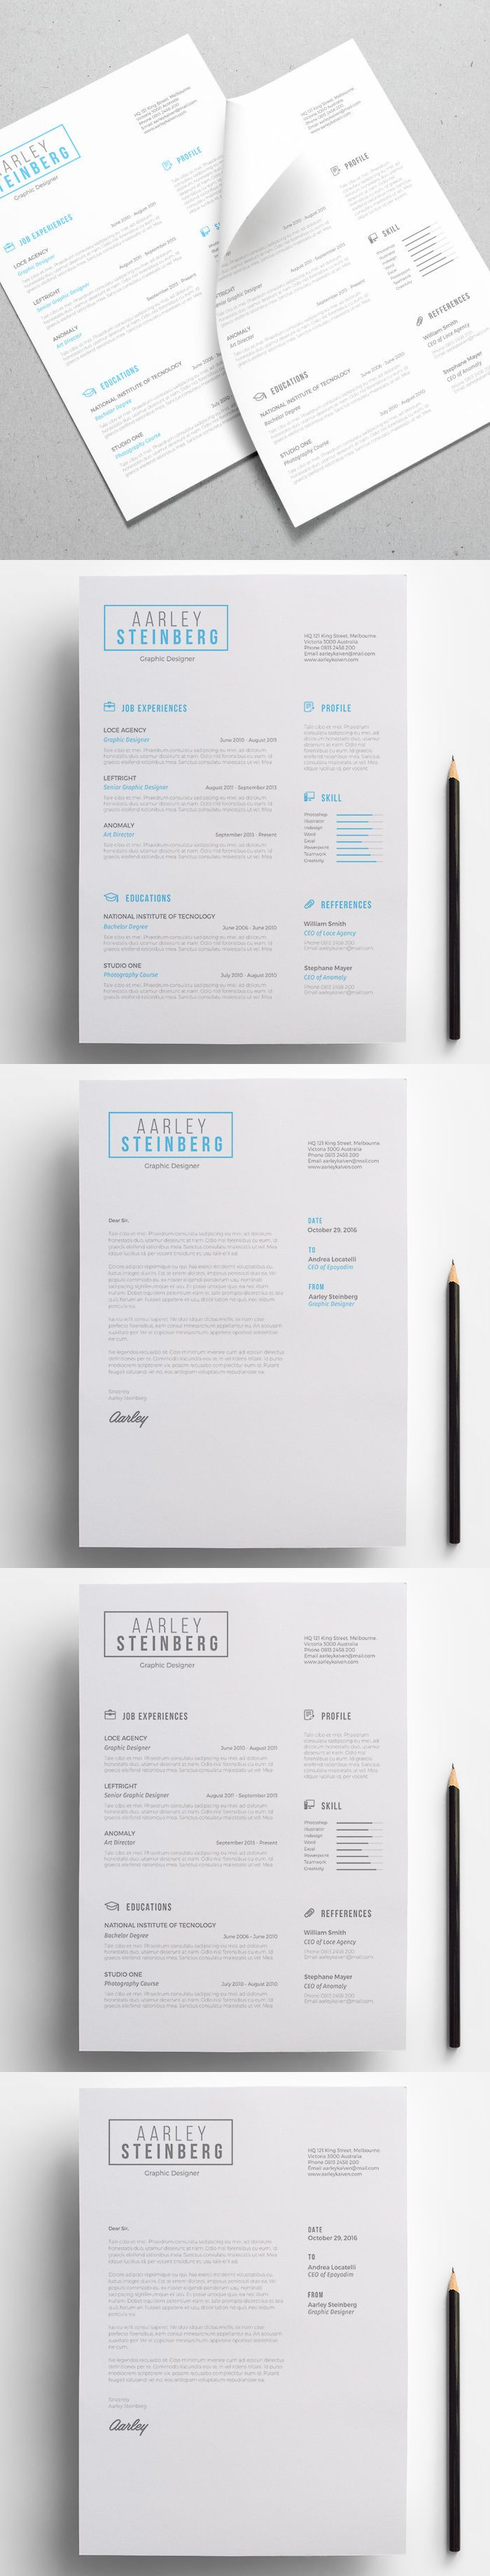 Minimal Resume Is A Resume Template With Simple And Clean Design. Template  PSD, MS Word .docx. If Youu0027re A User Experience Professional, Listen To The  UX ...